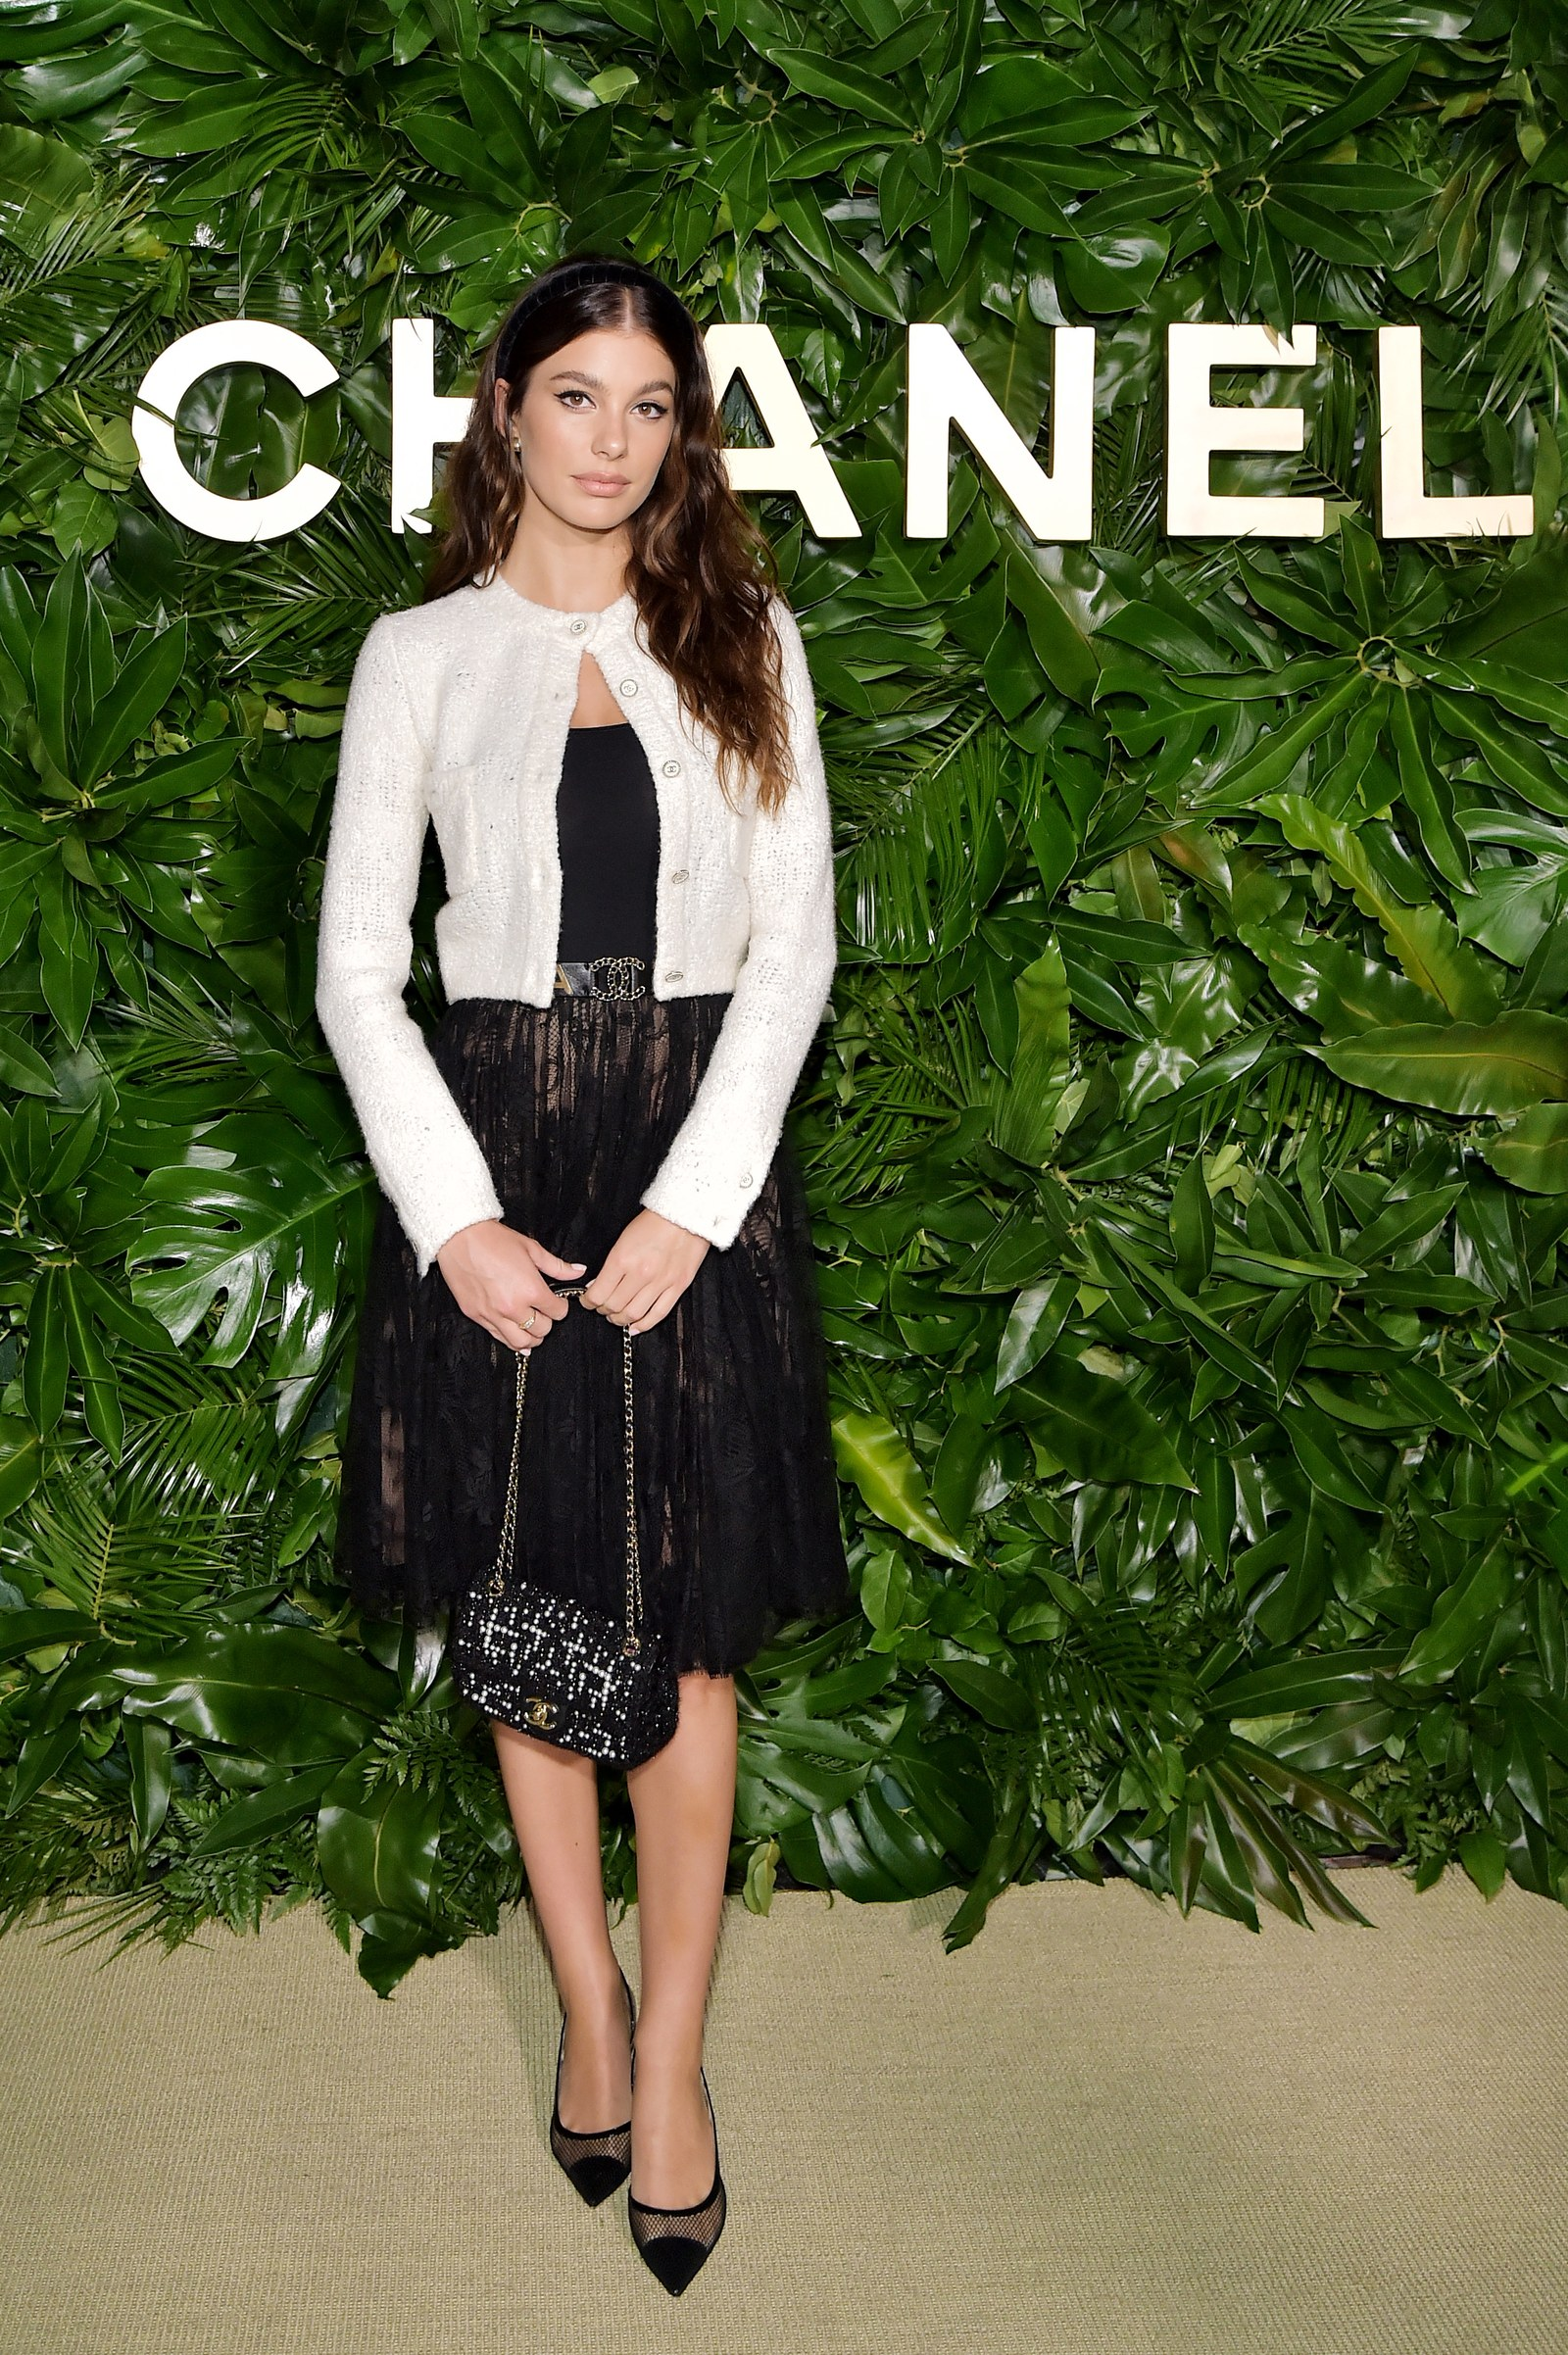 Camila Morrone wearing CHANEL attends Chanel Dinner Celebrating Gabrielle Chanel Essence With Margot Robbie on September...